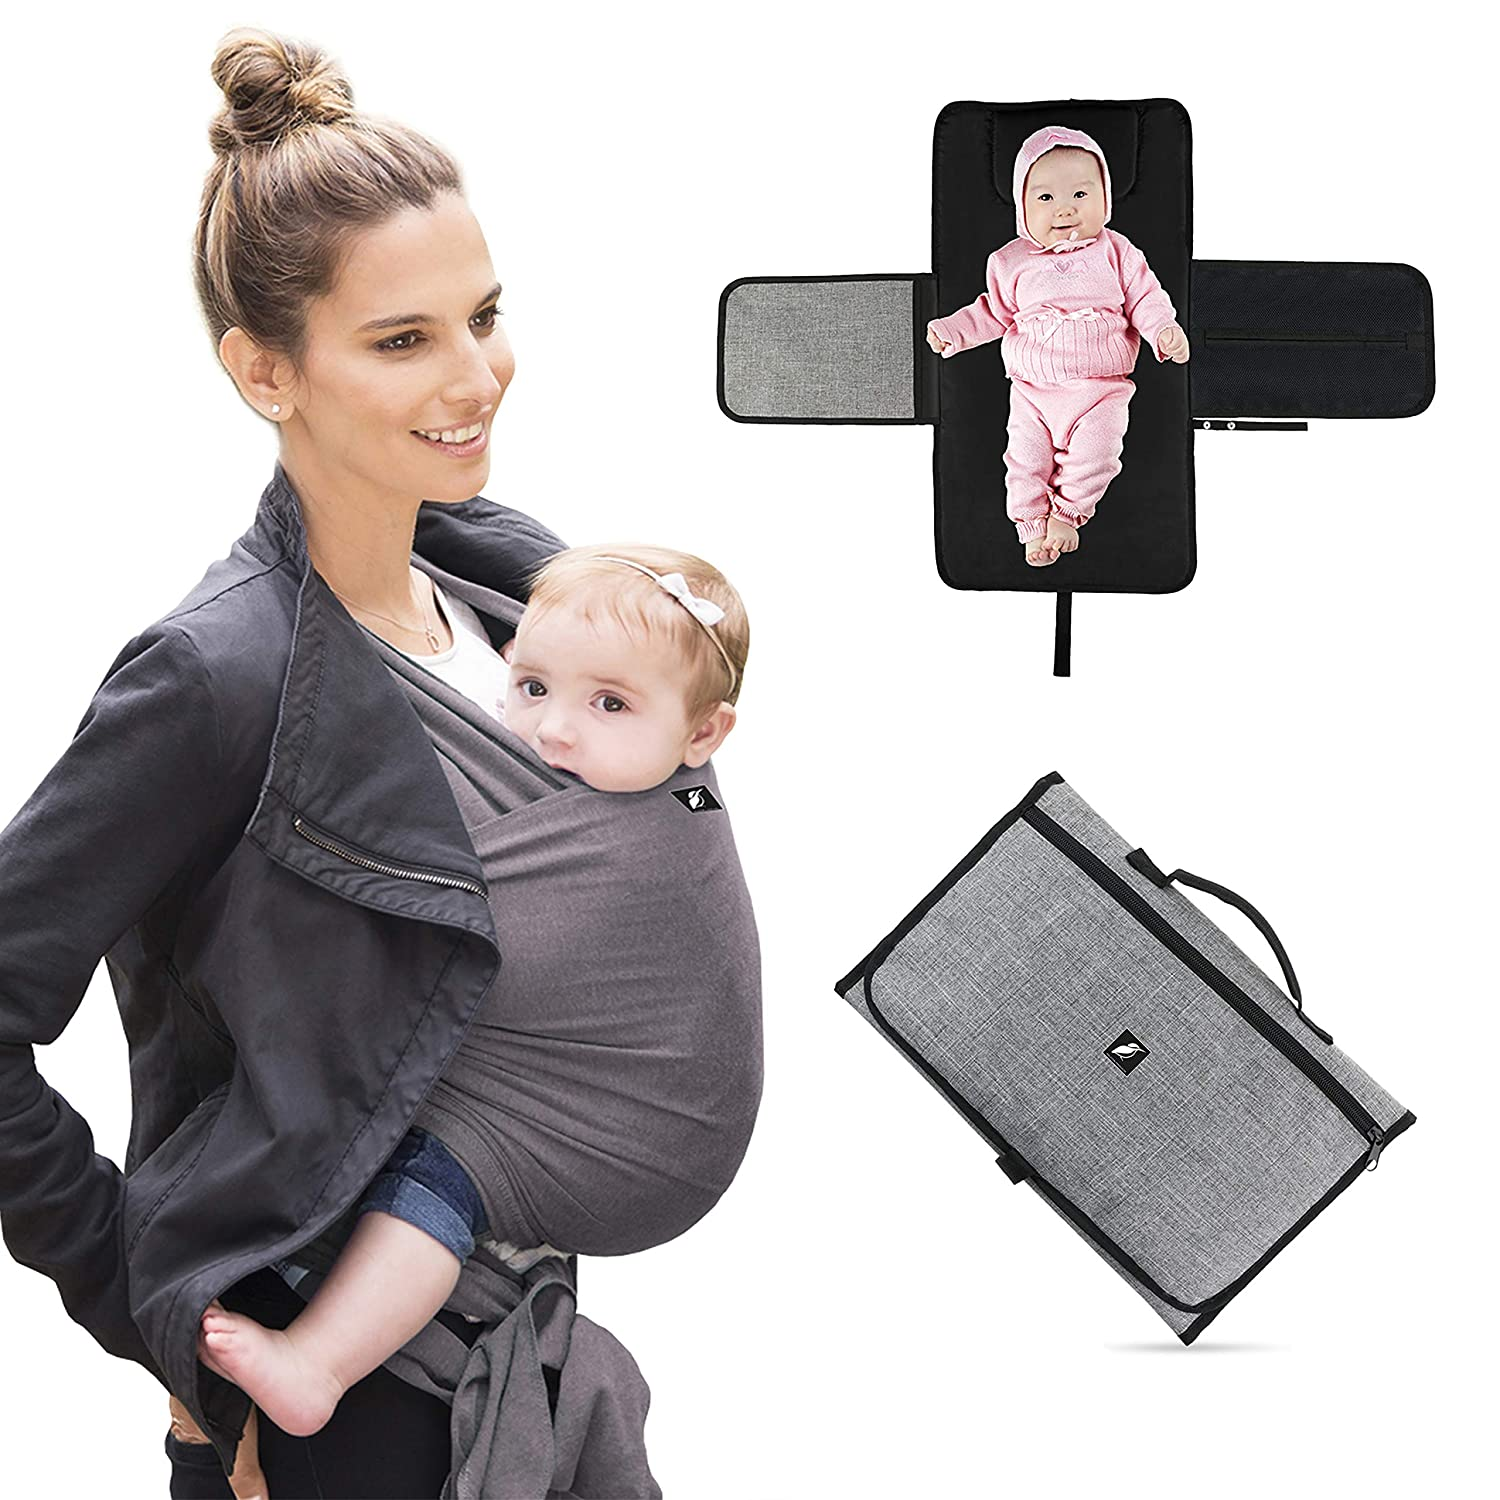 Halcyon Products – 1 Baby Sling Wrap Carrier with A Complimentary Portable Travel Baby Changing Mat Changing Pad – A Must for All Parents with Newborn Infants